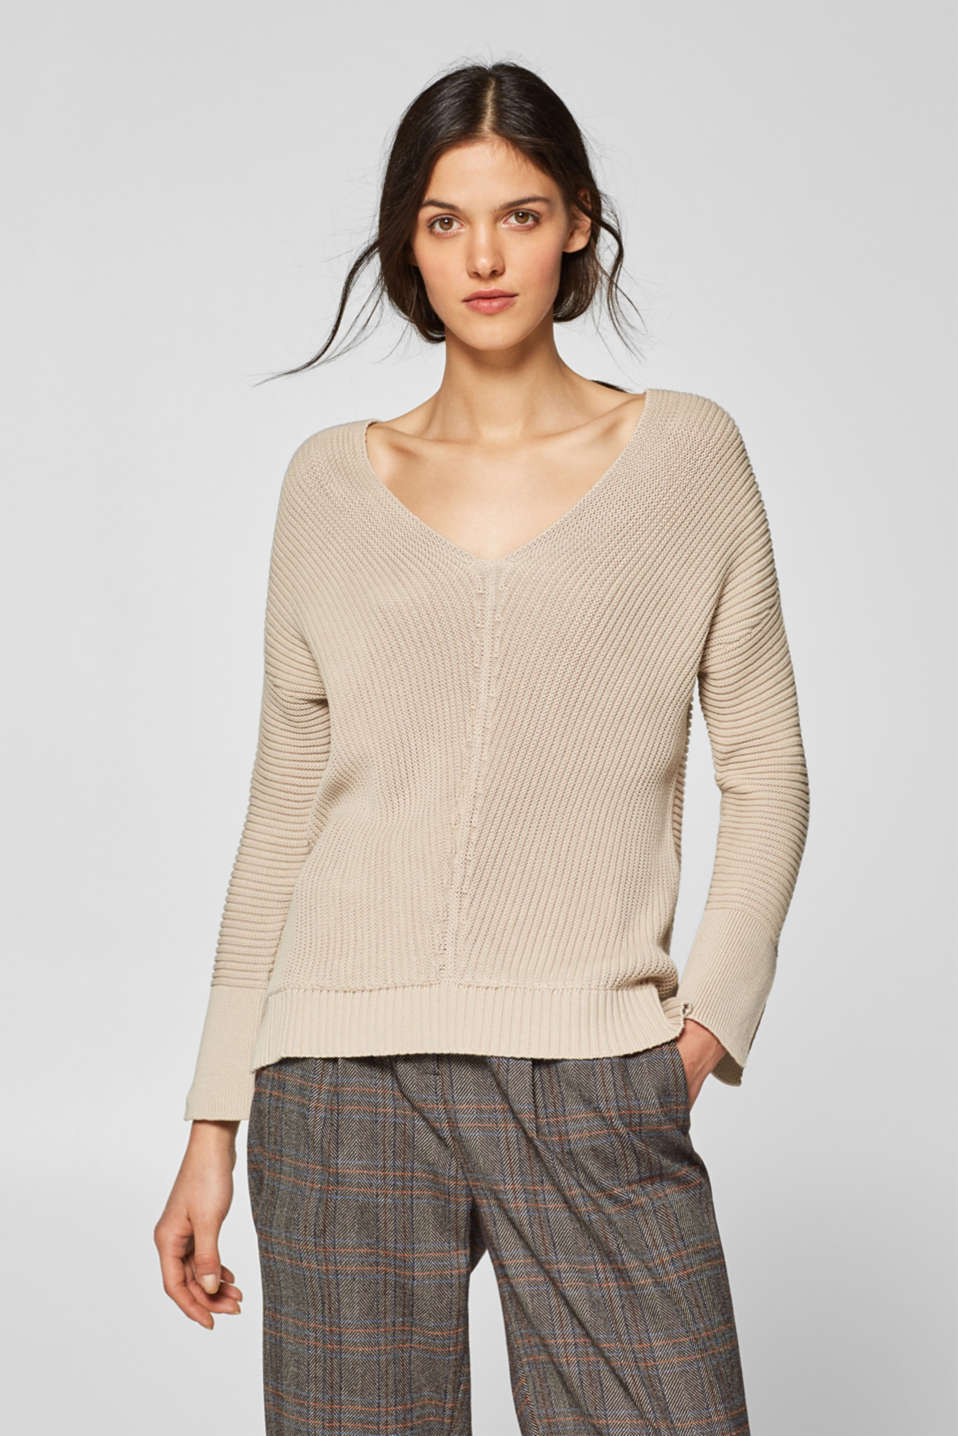 Esprit - Ribbed jumper with a large V-neck, 100% cotton